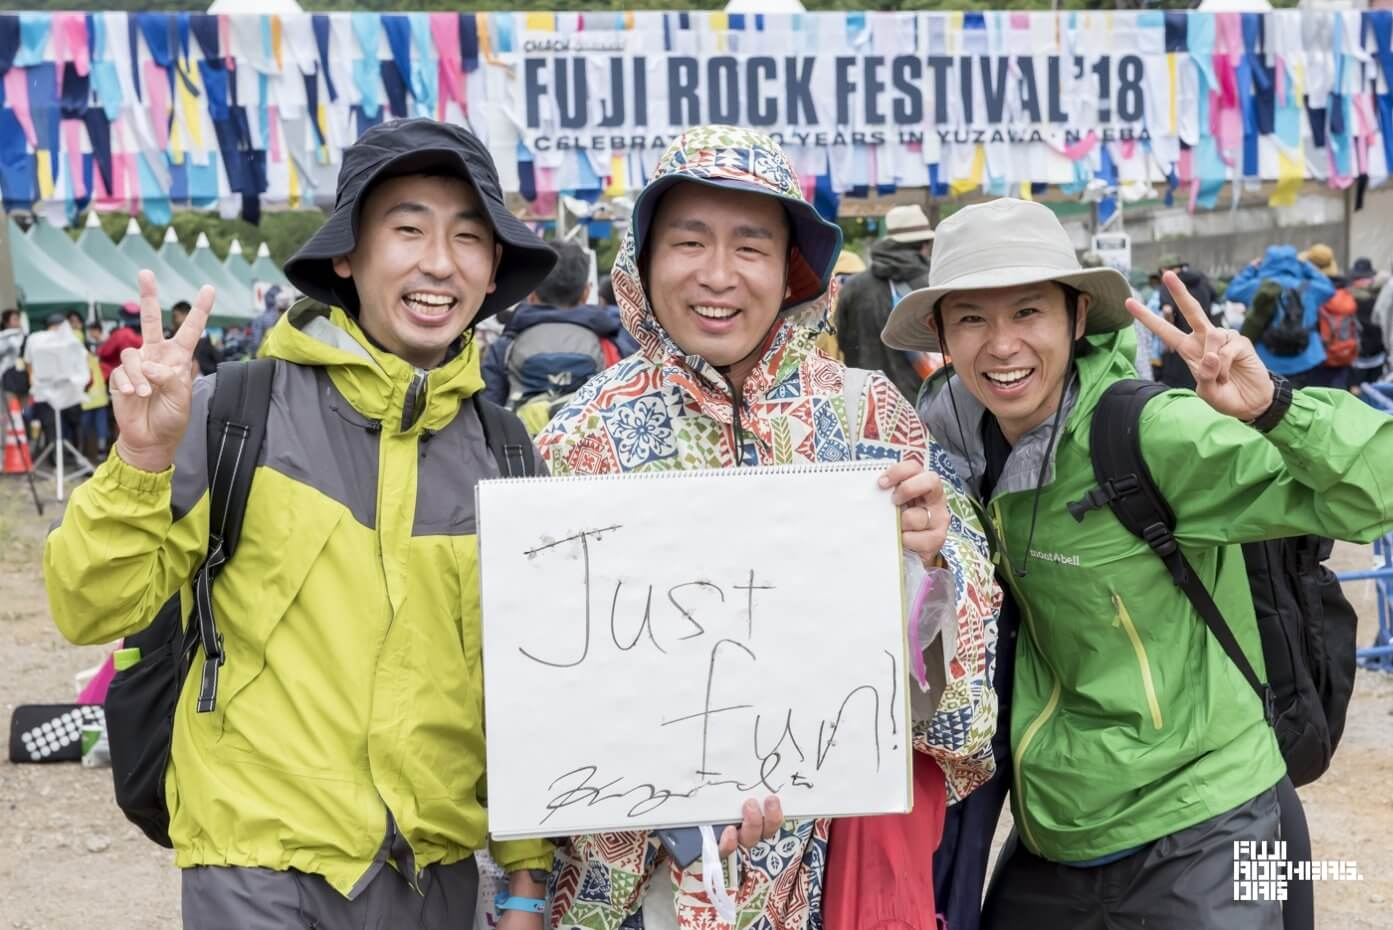 Message for Fujirock! 2018 #073